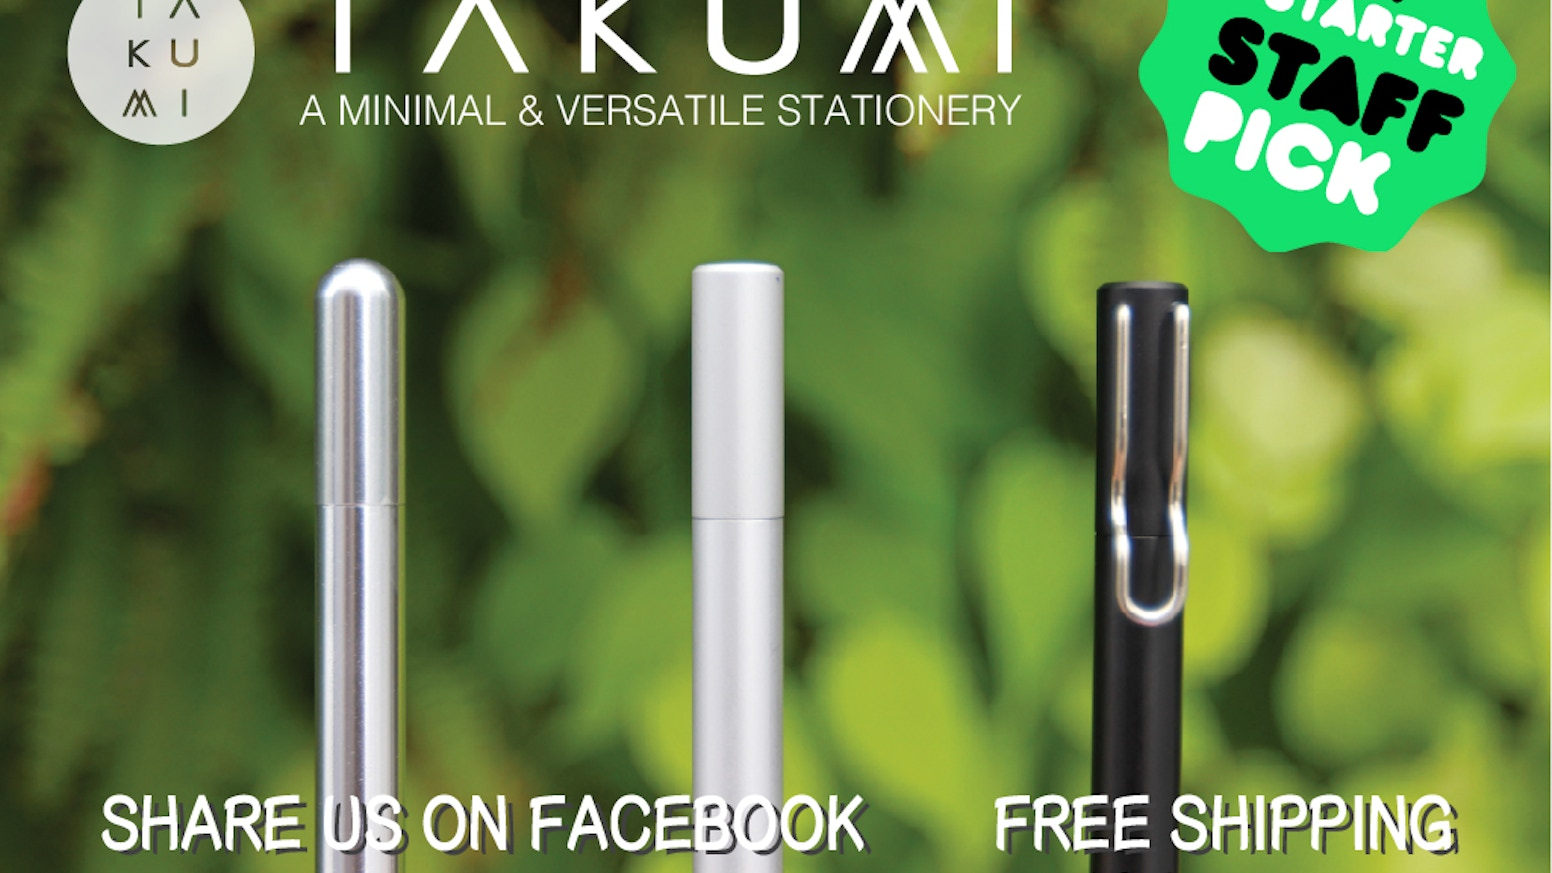 The first length-adjustable pen in the world / Compatible for over 50+ refills / Free shipping worldwide! Smart~Simple~Stylish~